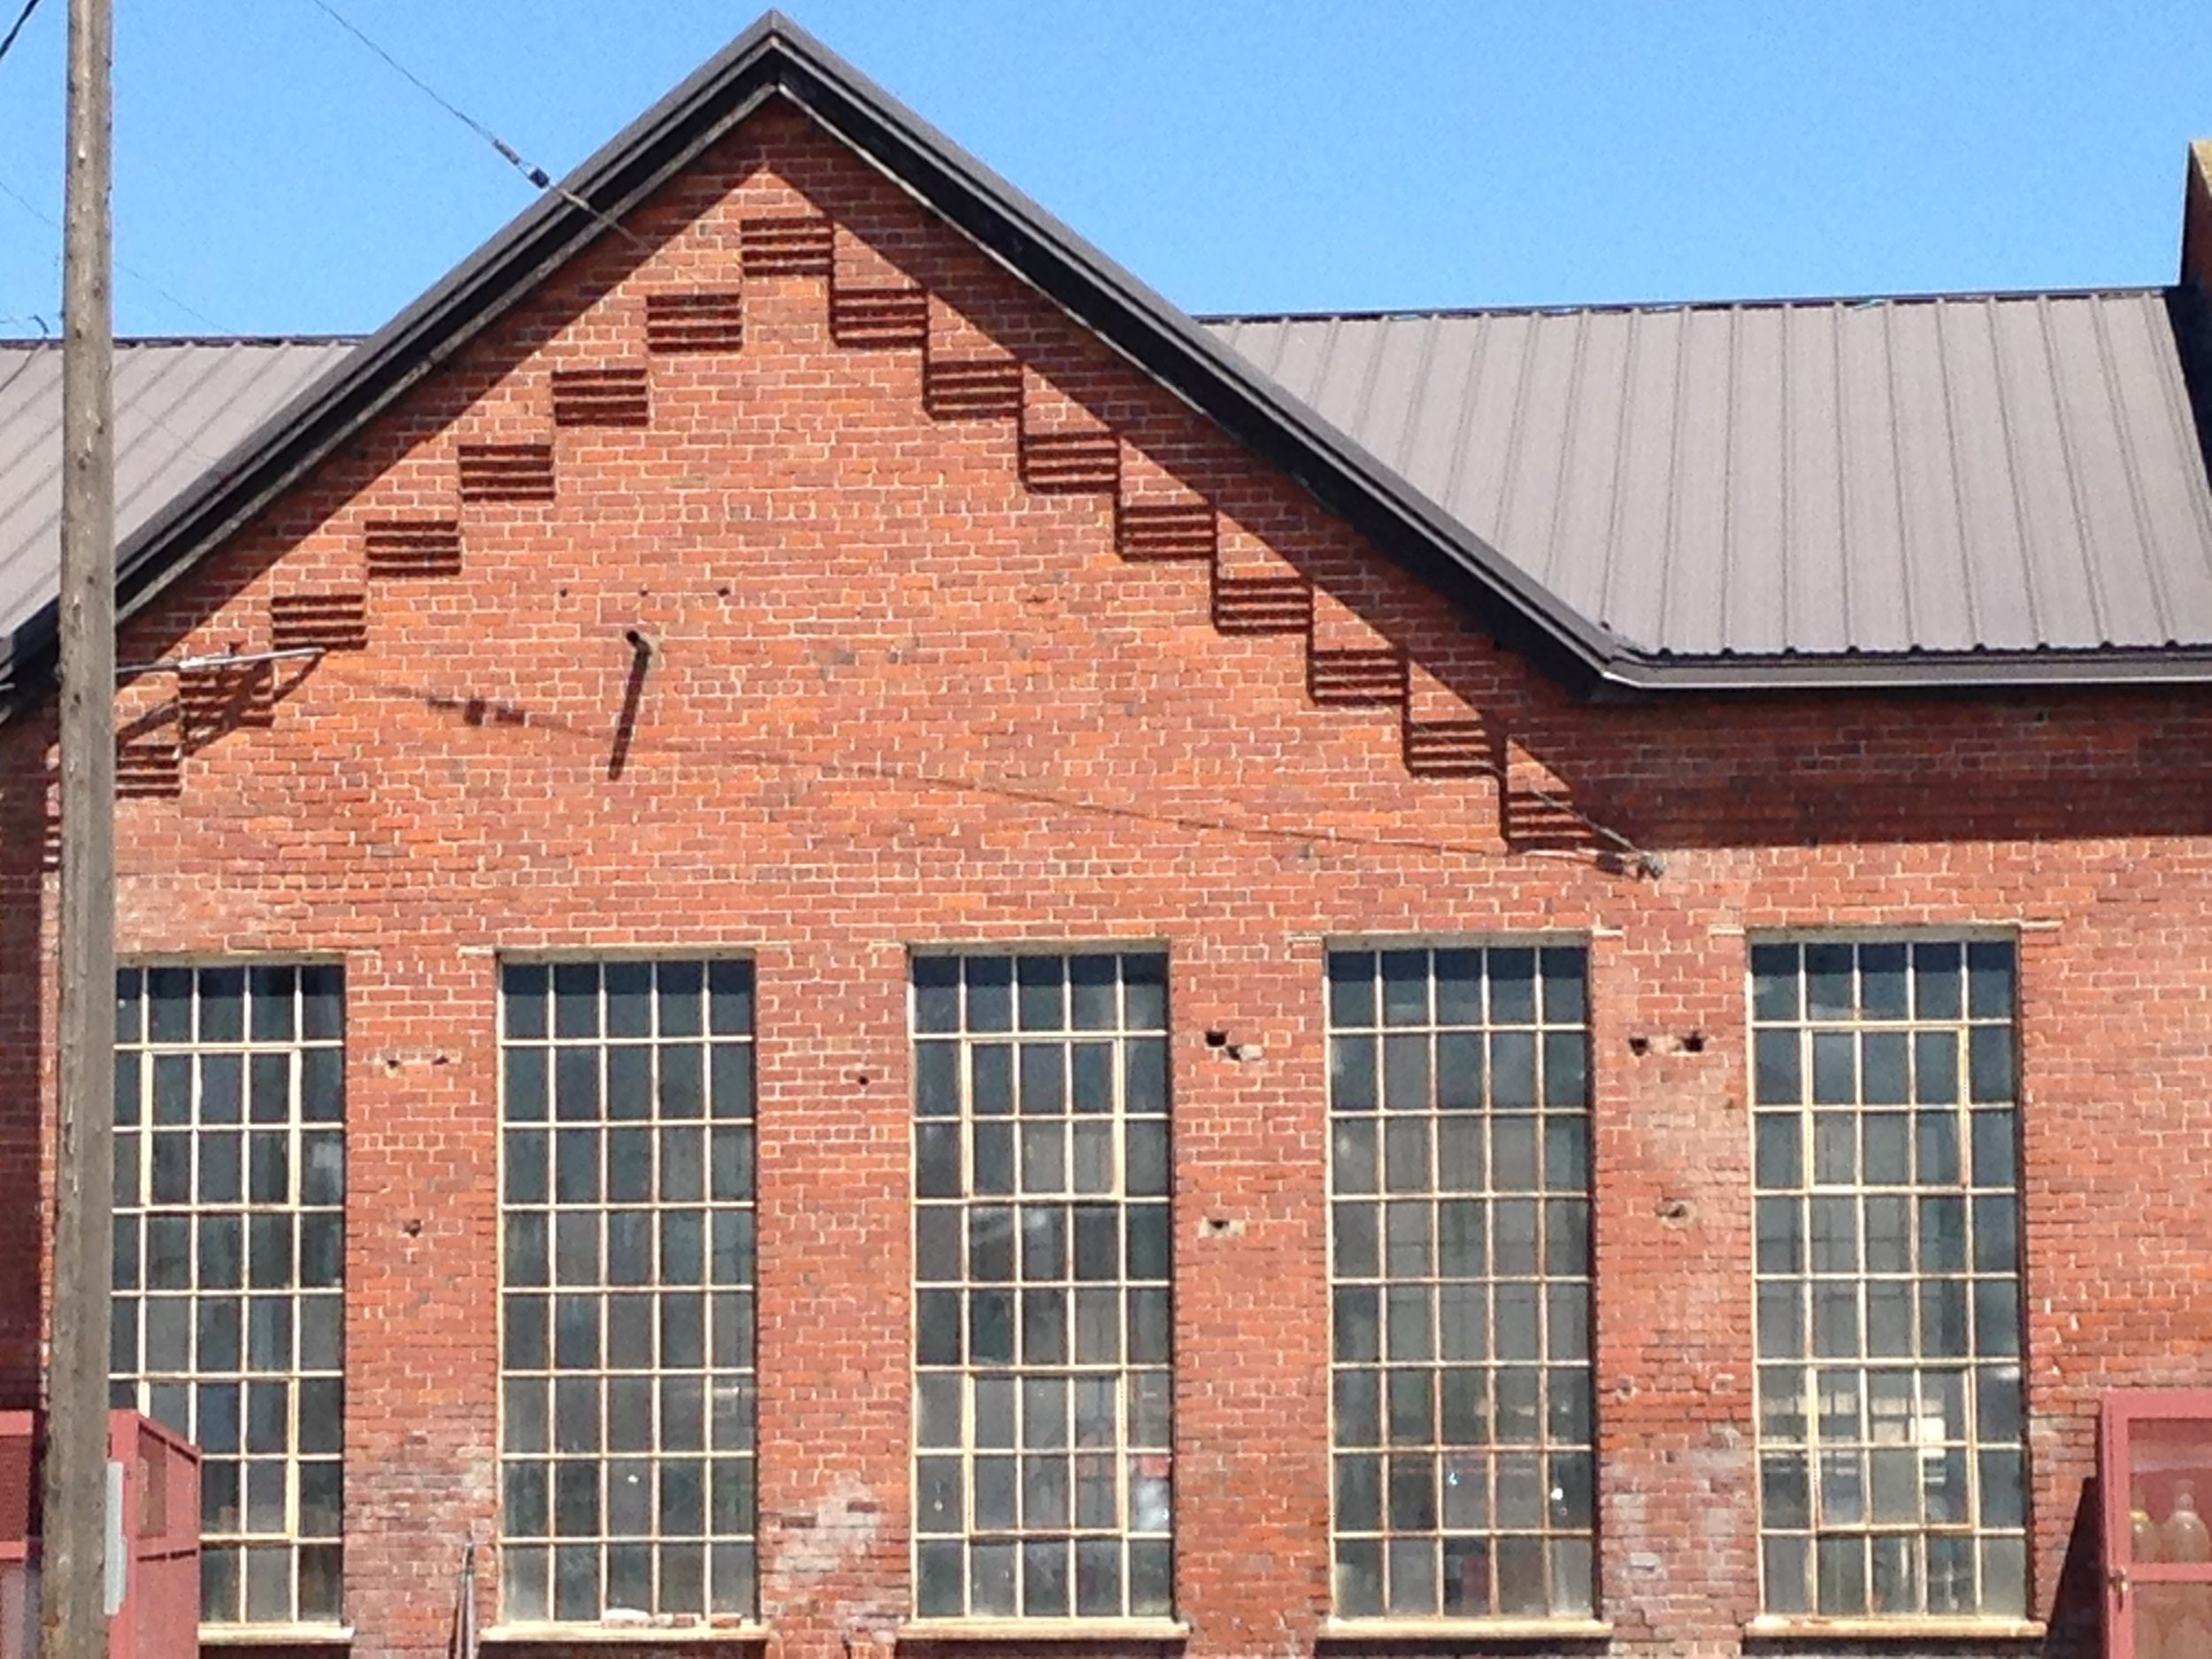 Beautiful brick step detailing along the roof line here.